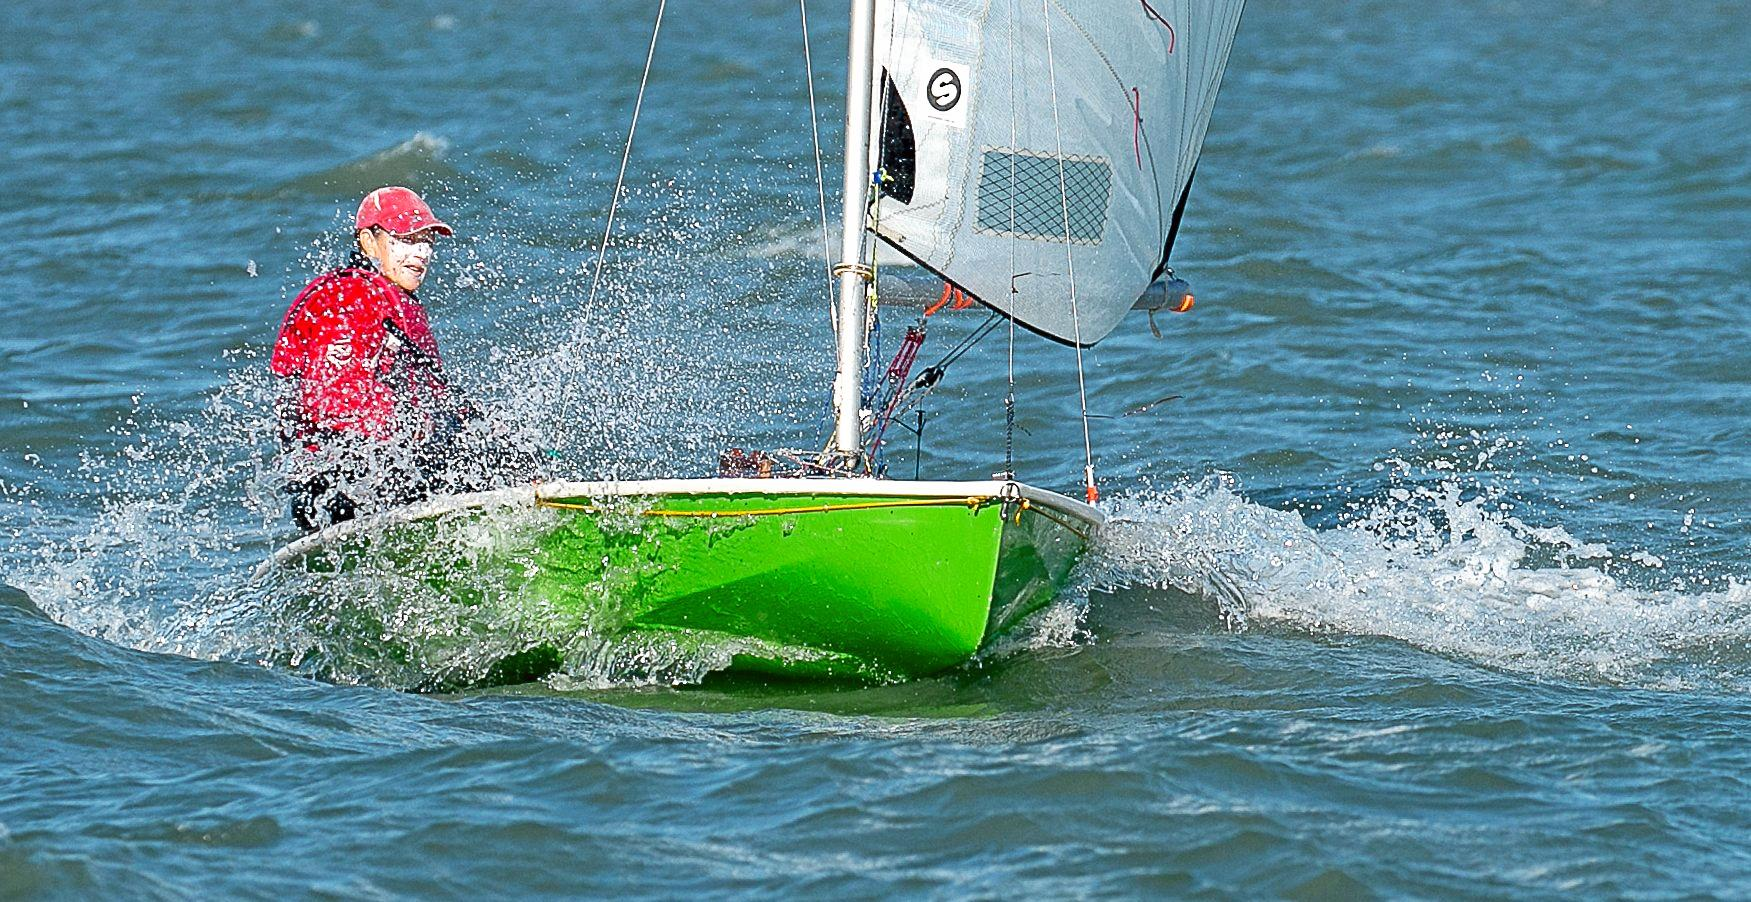 SAILING: Maria Mohrholz at the recent Mutihull Challenge at Hervey Bay on Windspeil.